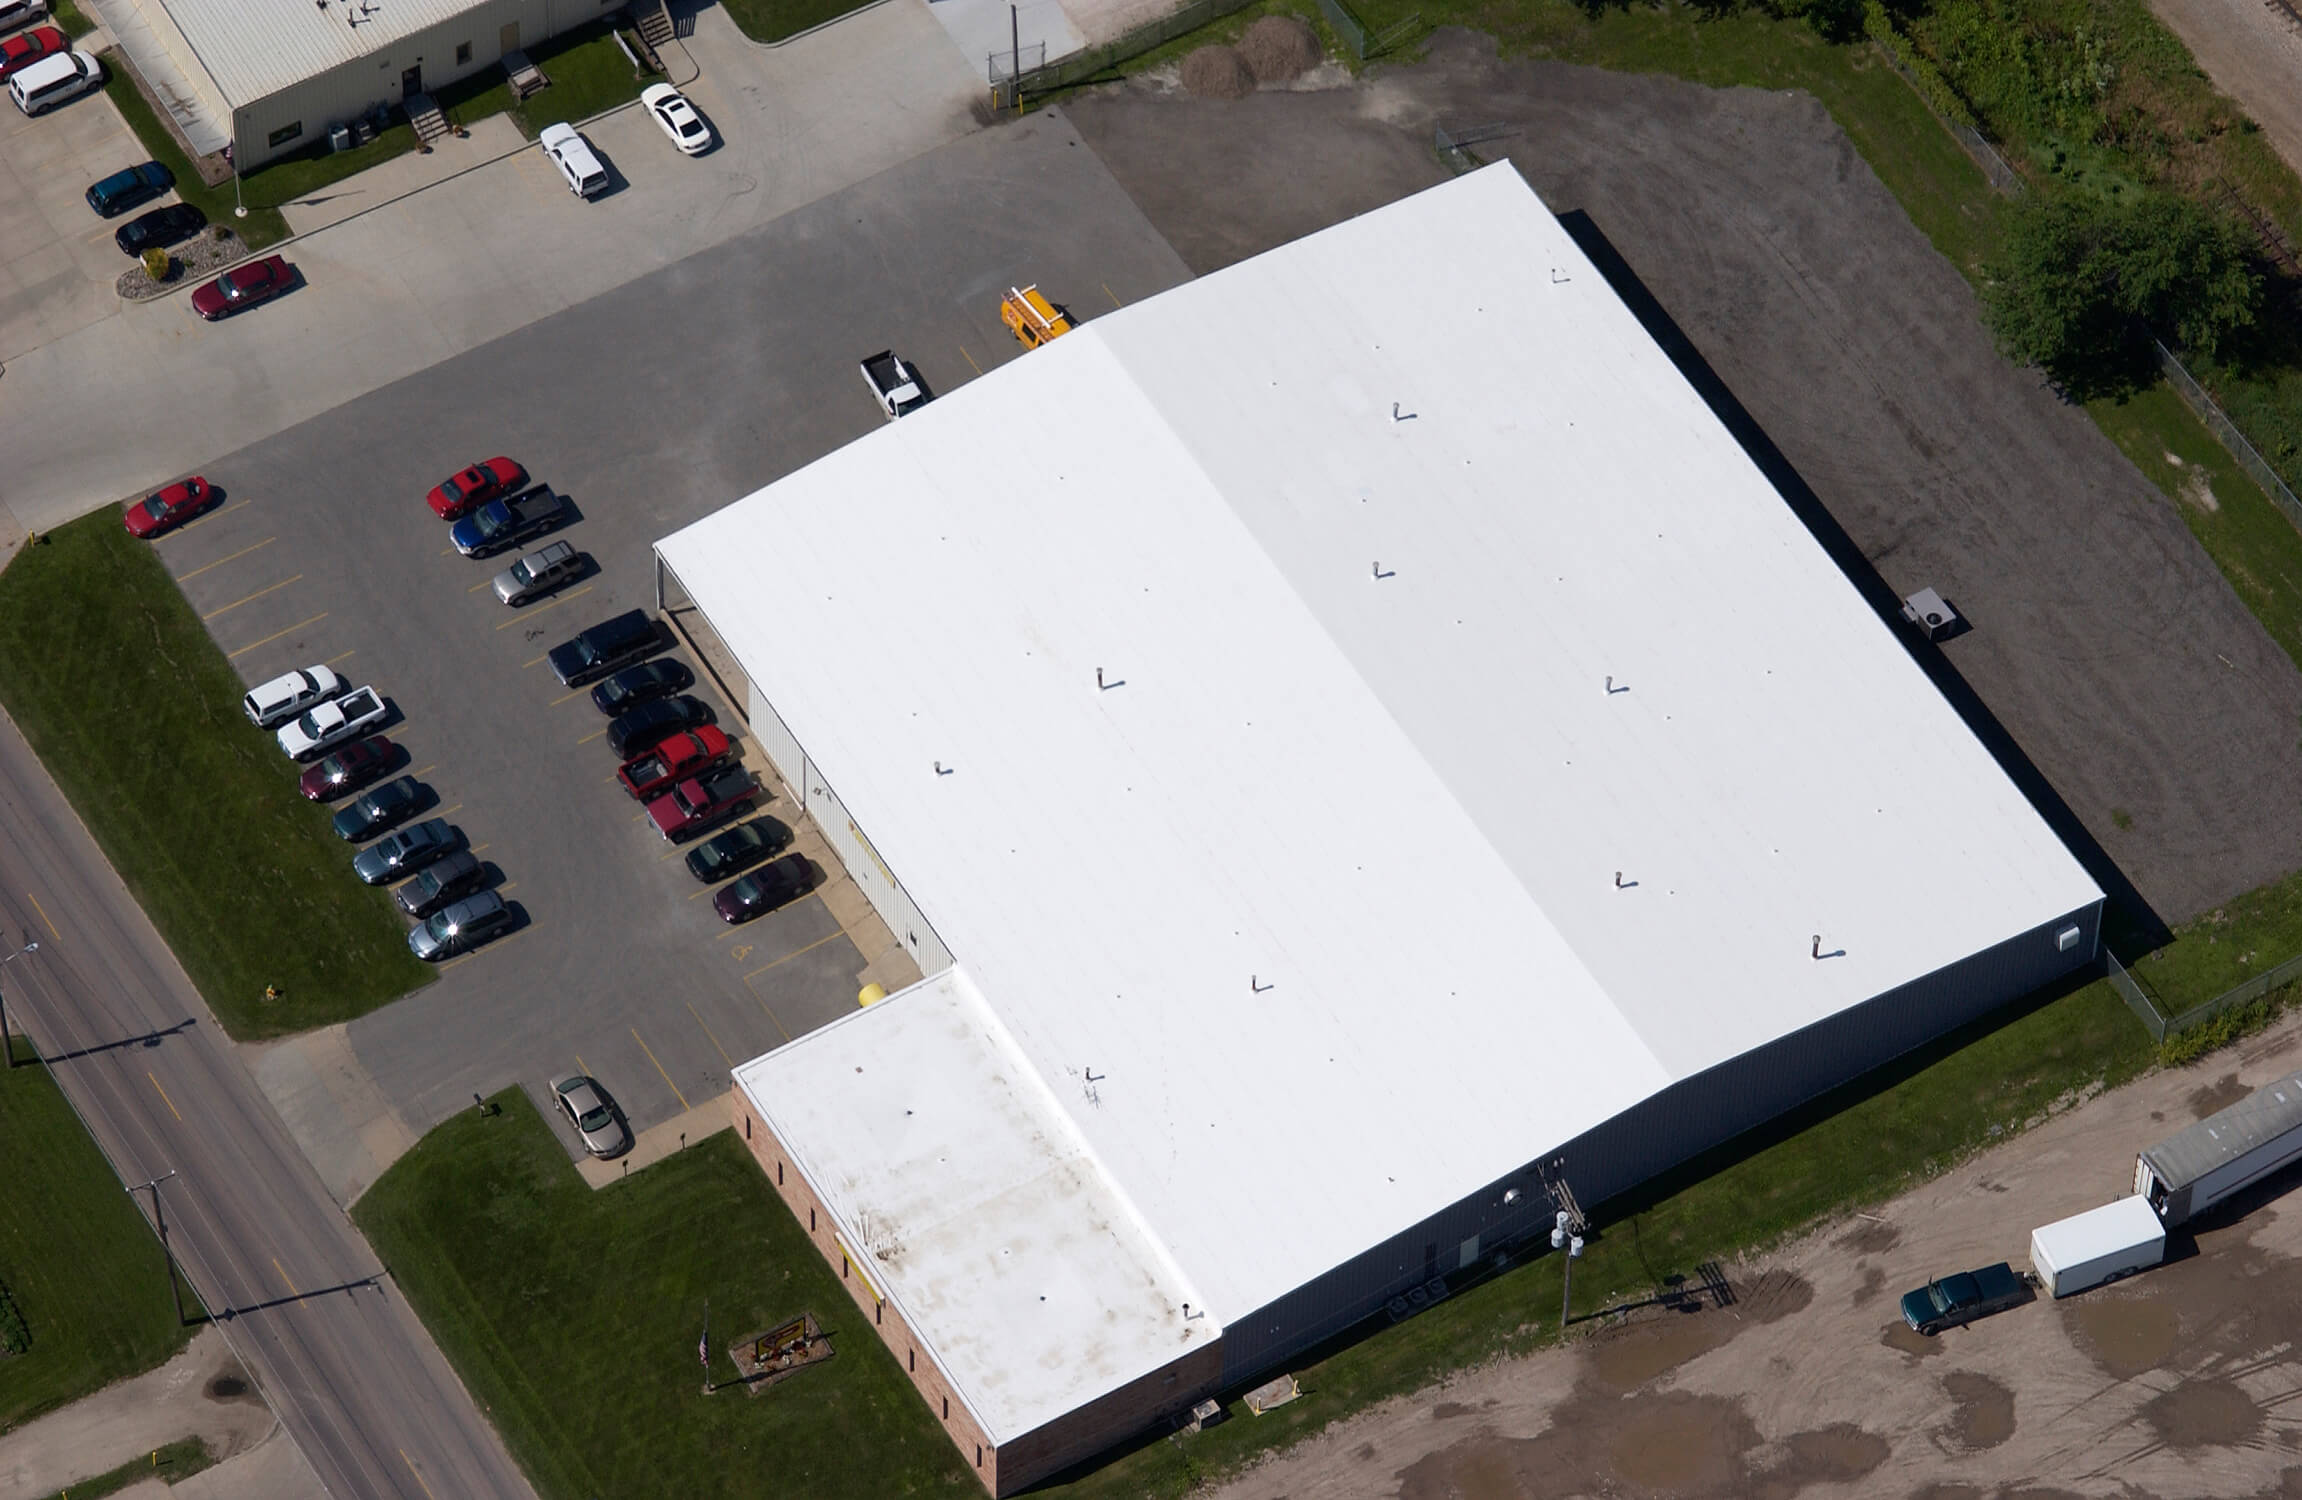 187 Aerial View Of Commercial Roof Building